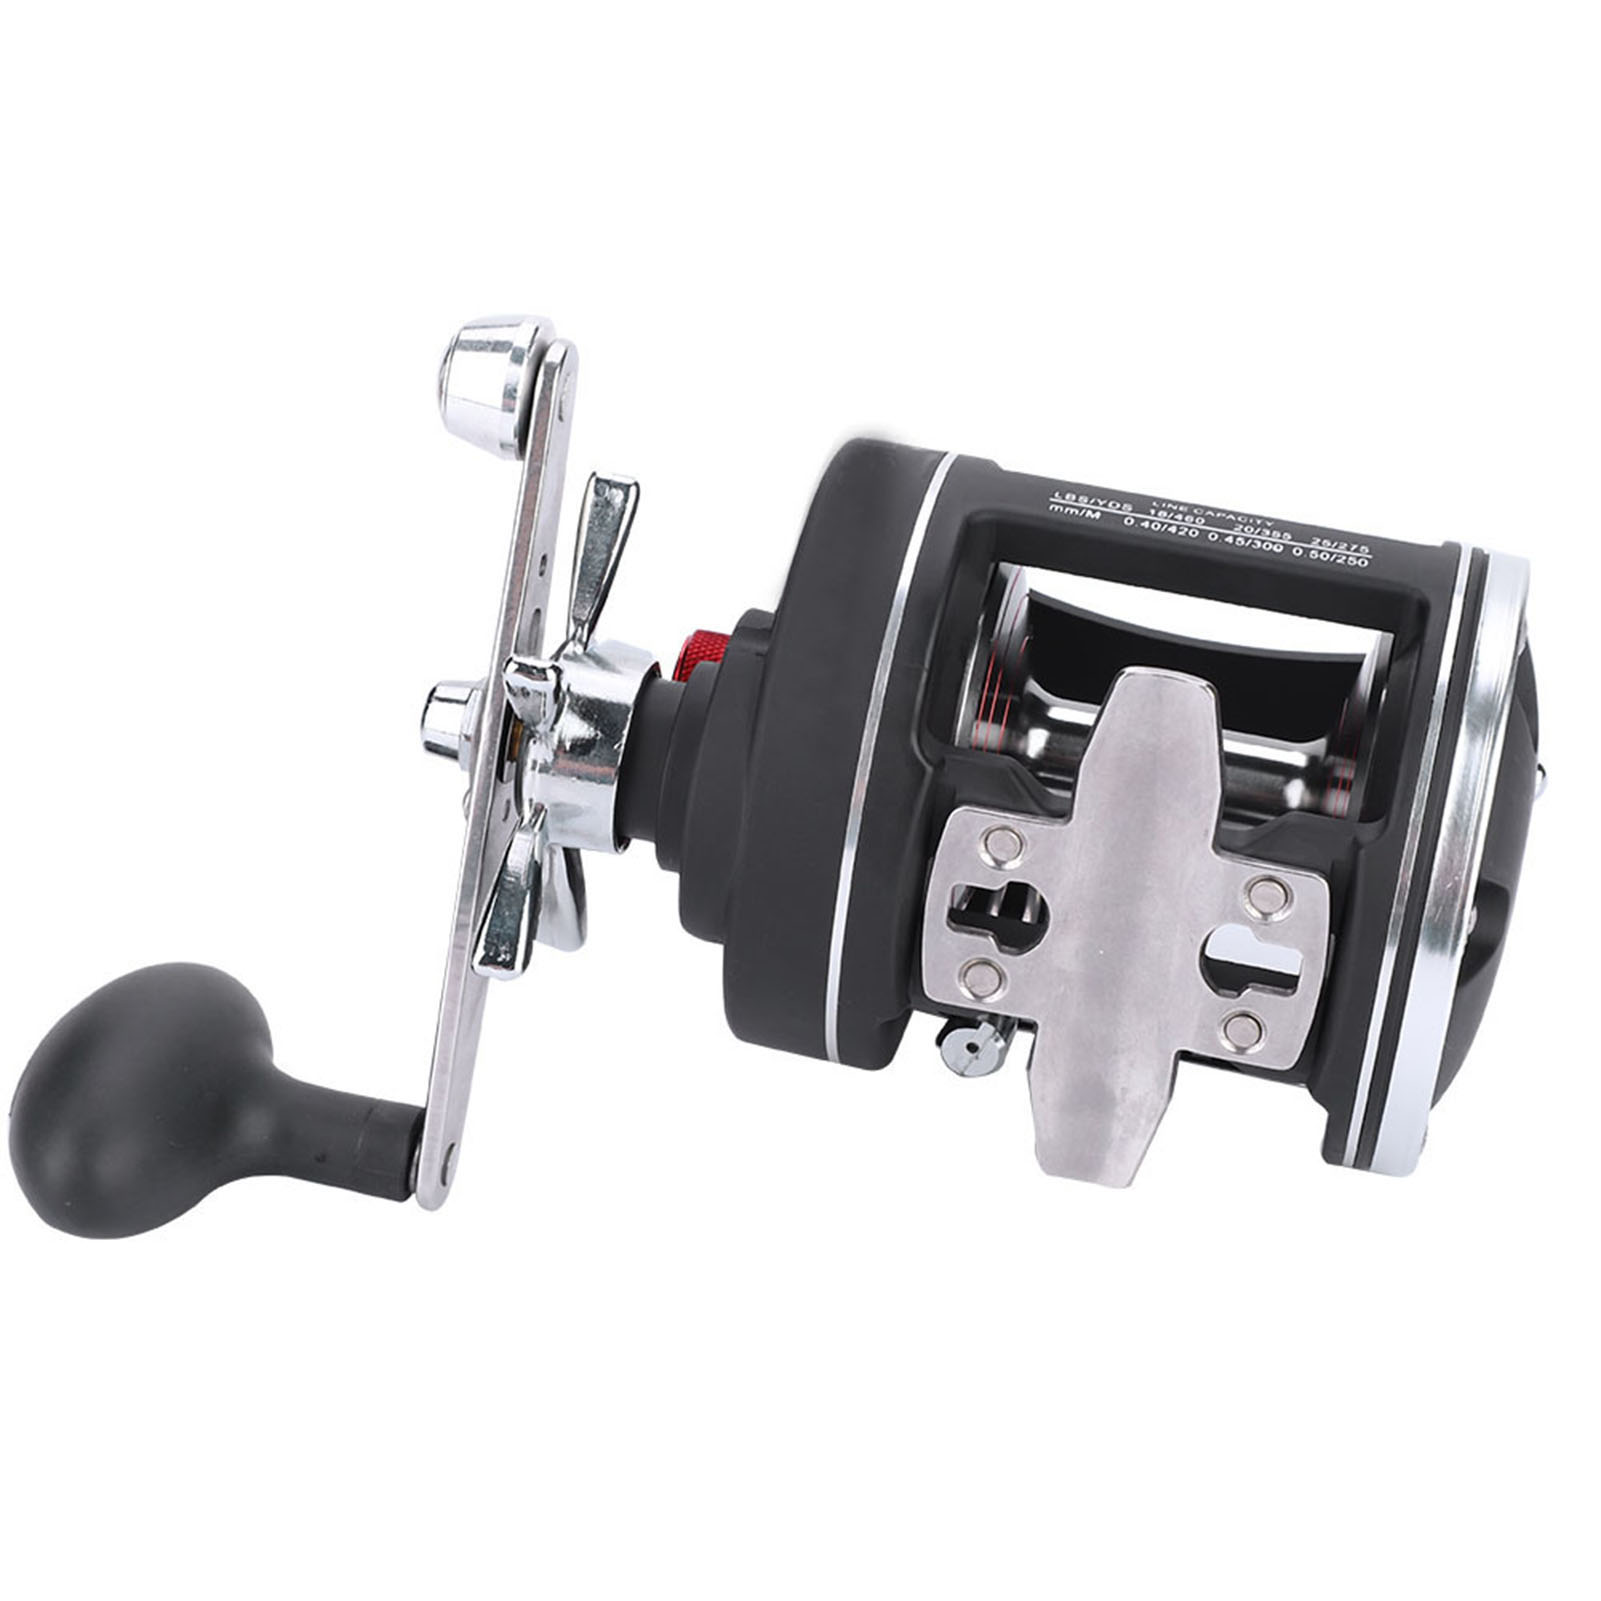 12BBTrolling Reel Counter Saltwater Sea Fishing Boat Fishing Sea Conventional Drum with Line af7fa1